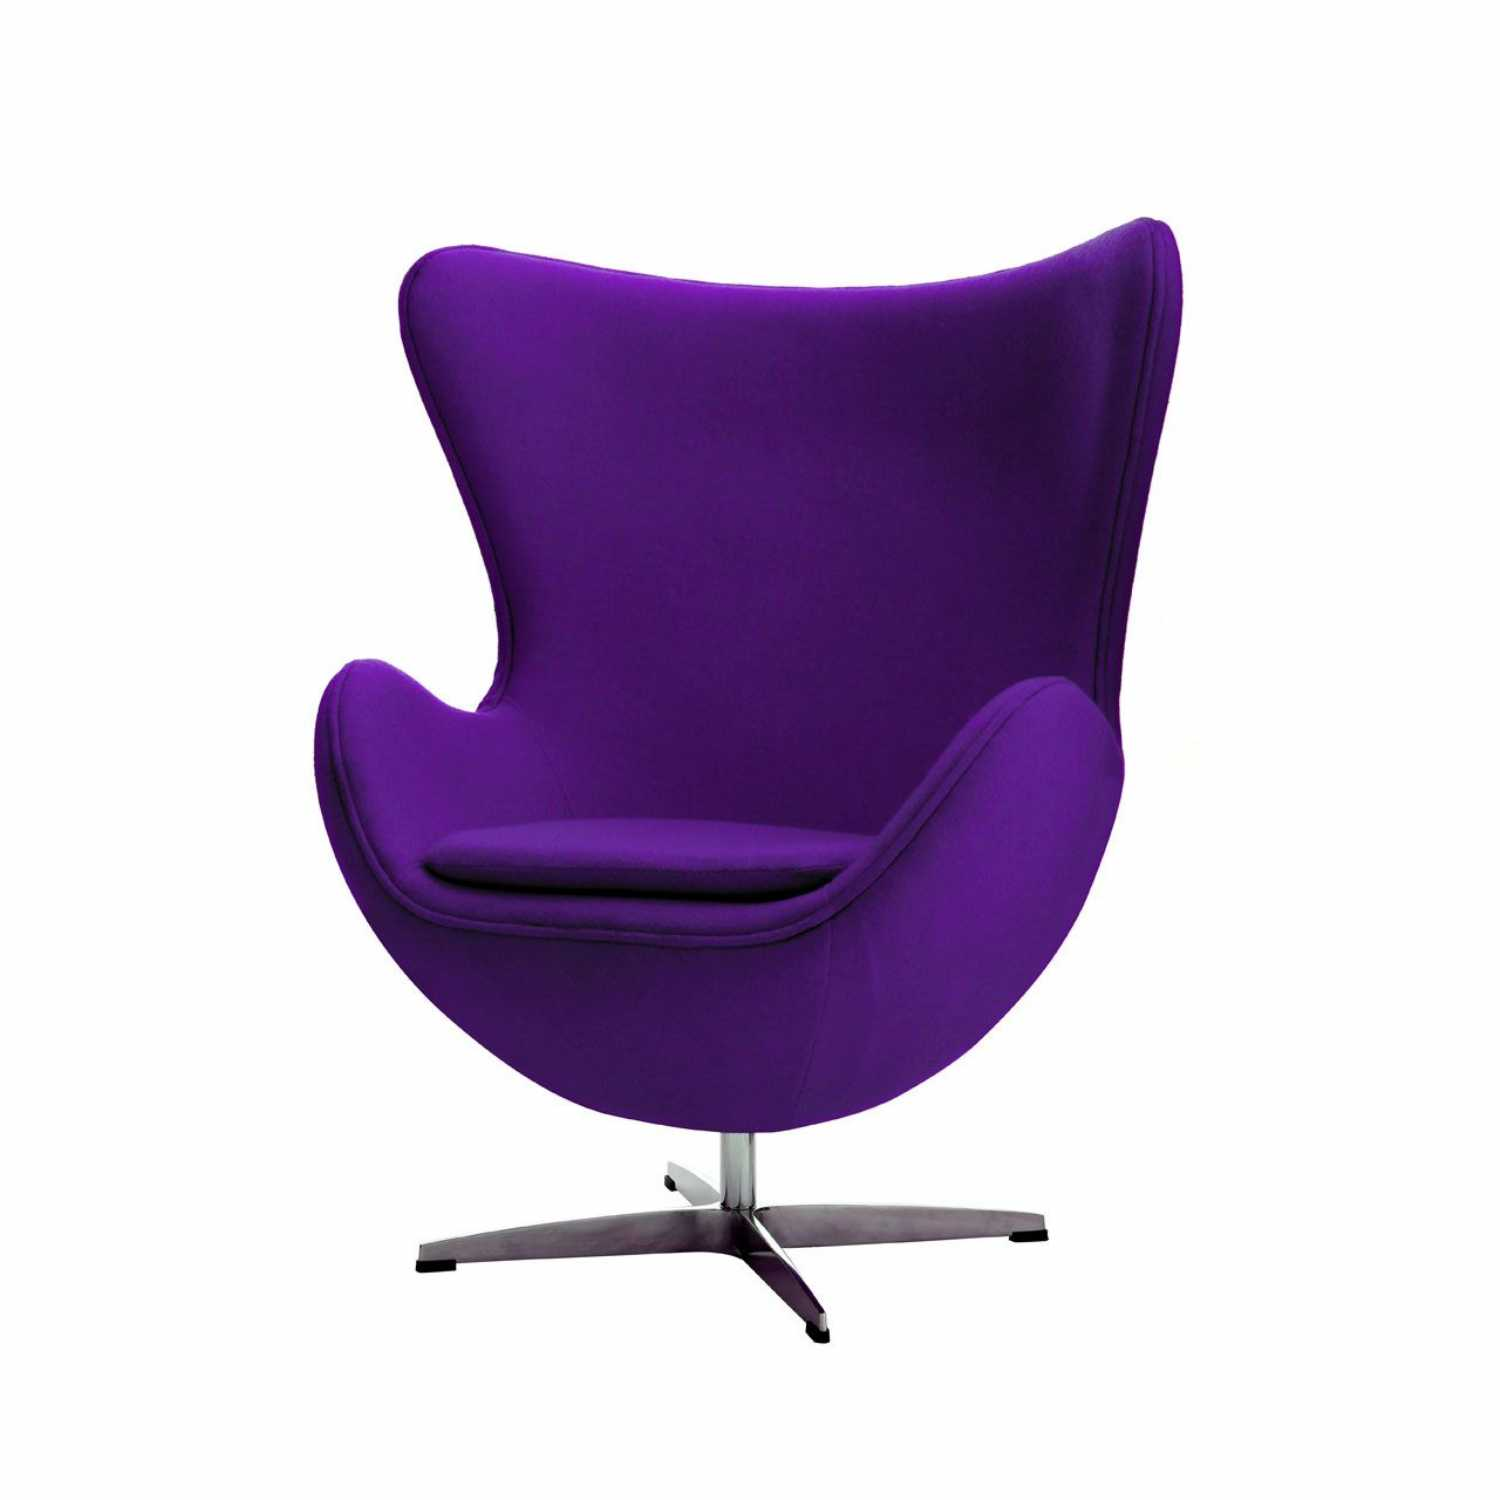 revolving easy chair used no plumbing pedicure purple wool effect chrome base jubilee magnify click to view larger image and more views